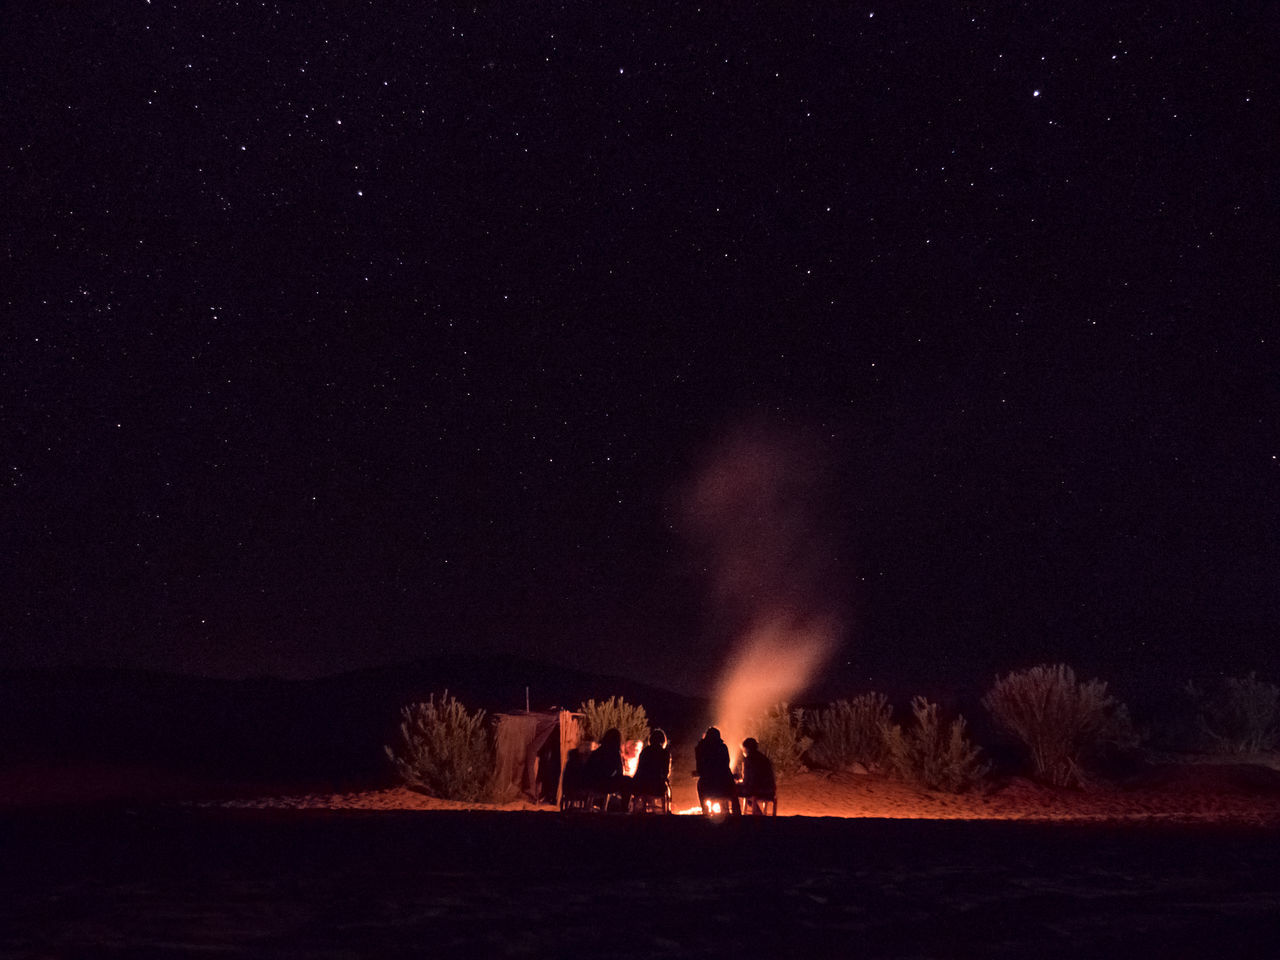 Silhouette People By Campfire Against Sky At Night